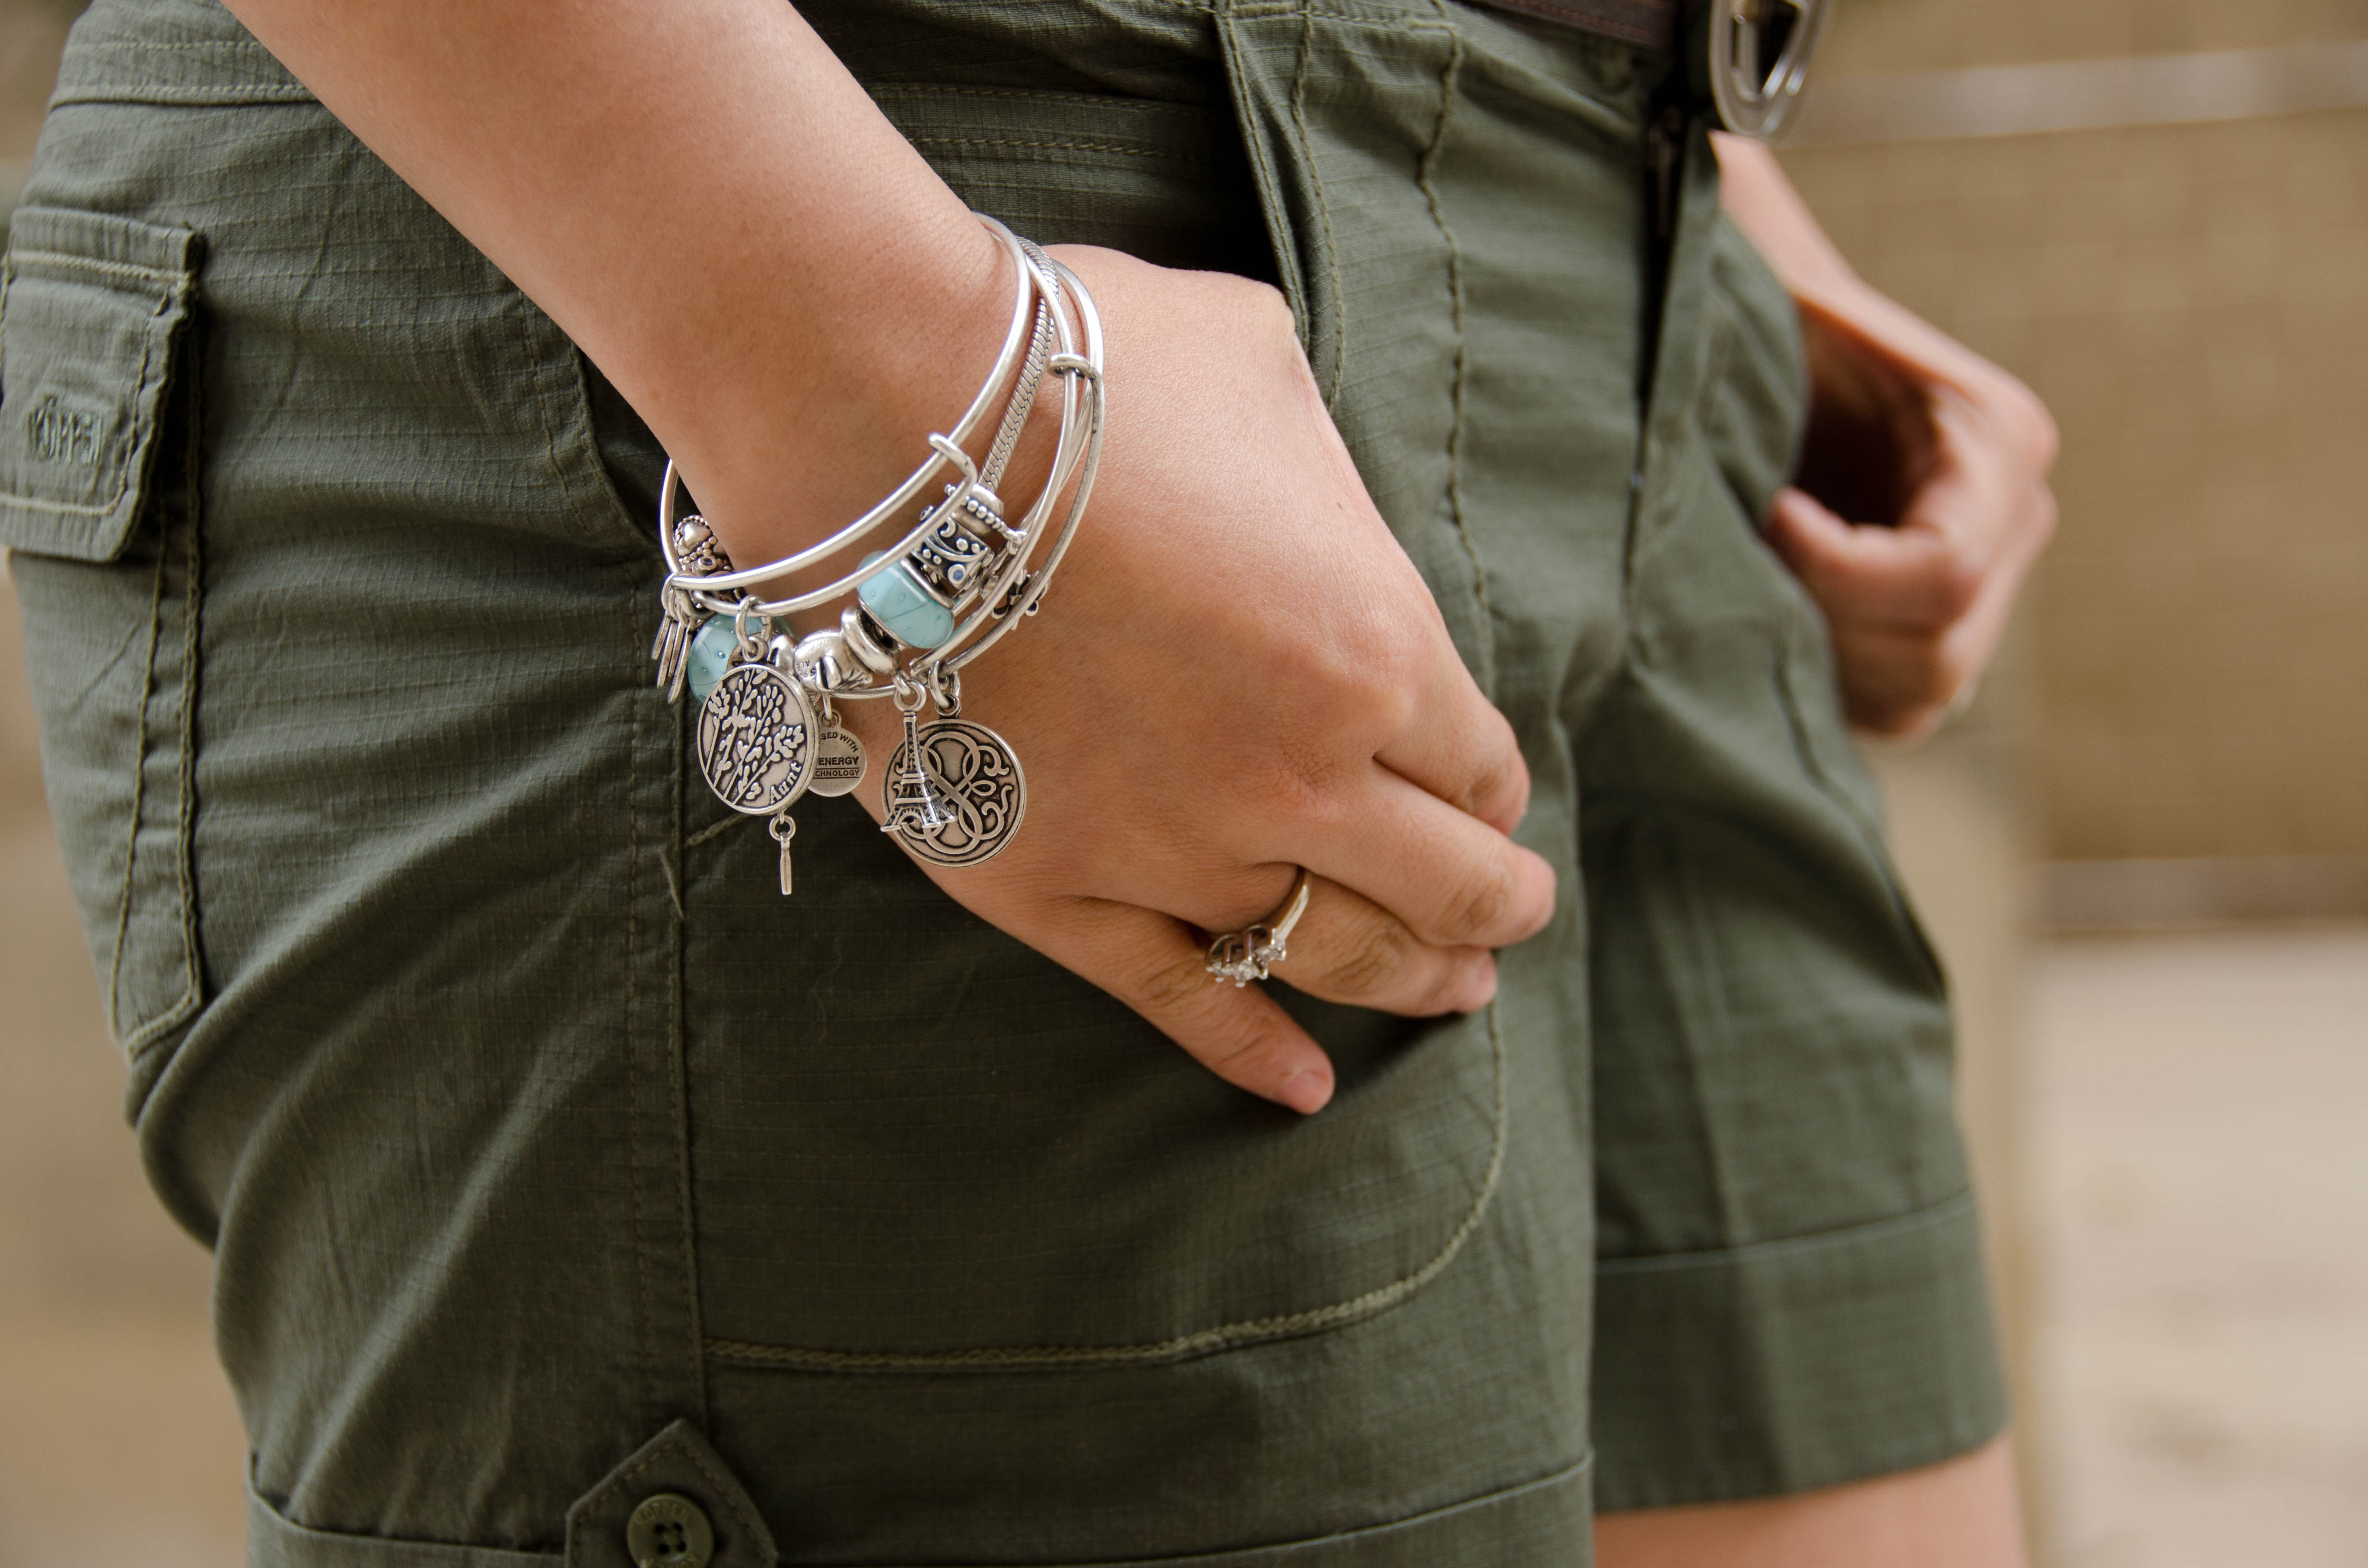 How to wear multiple alex and ani bracelets